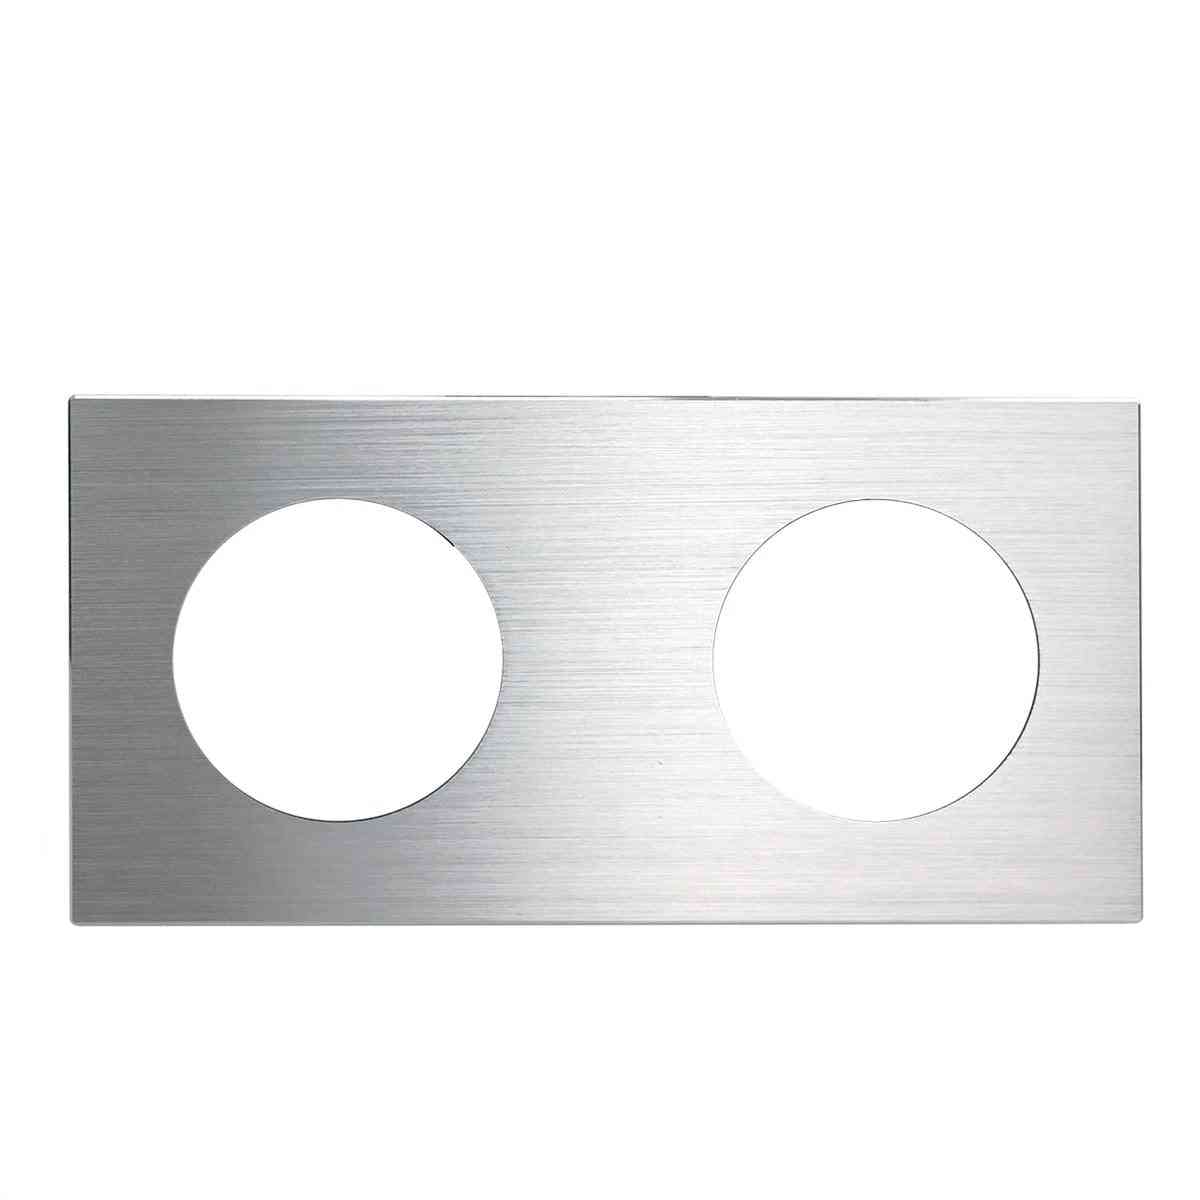 172*86mm Double Panel Brushed Aluminum For Wall Switch Socket, Uk, Eu Universal Metal Plate